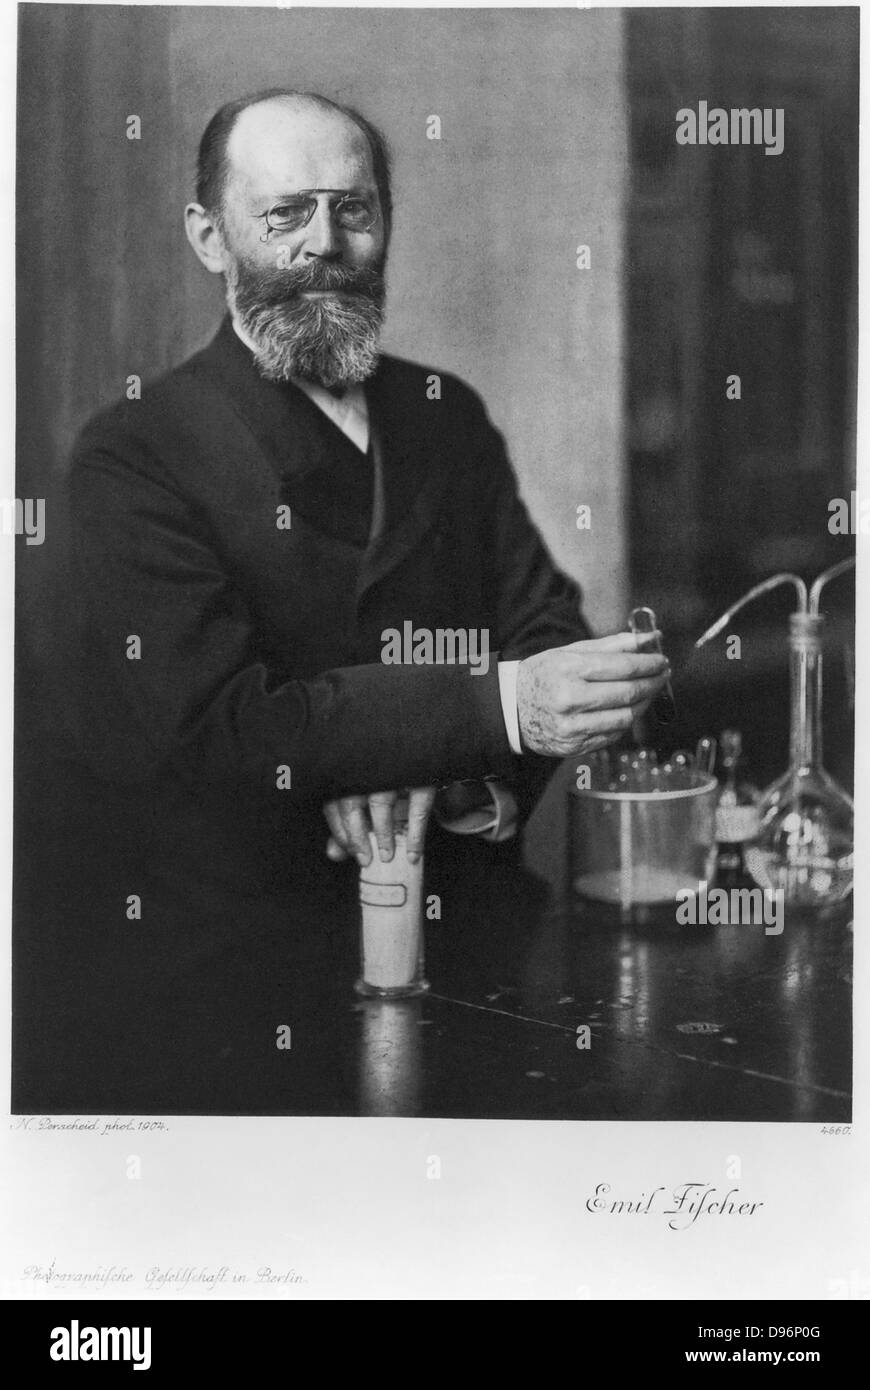 Emil Fischer (1852-1919) German chemist: Nobel prize for chemistry 1904. - Stock Image